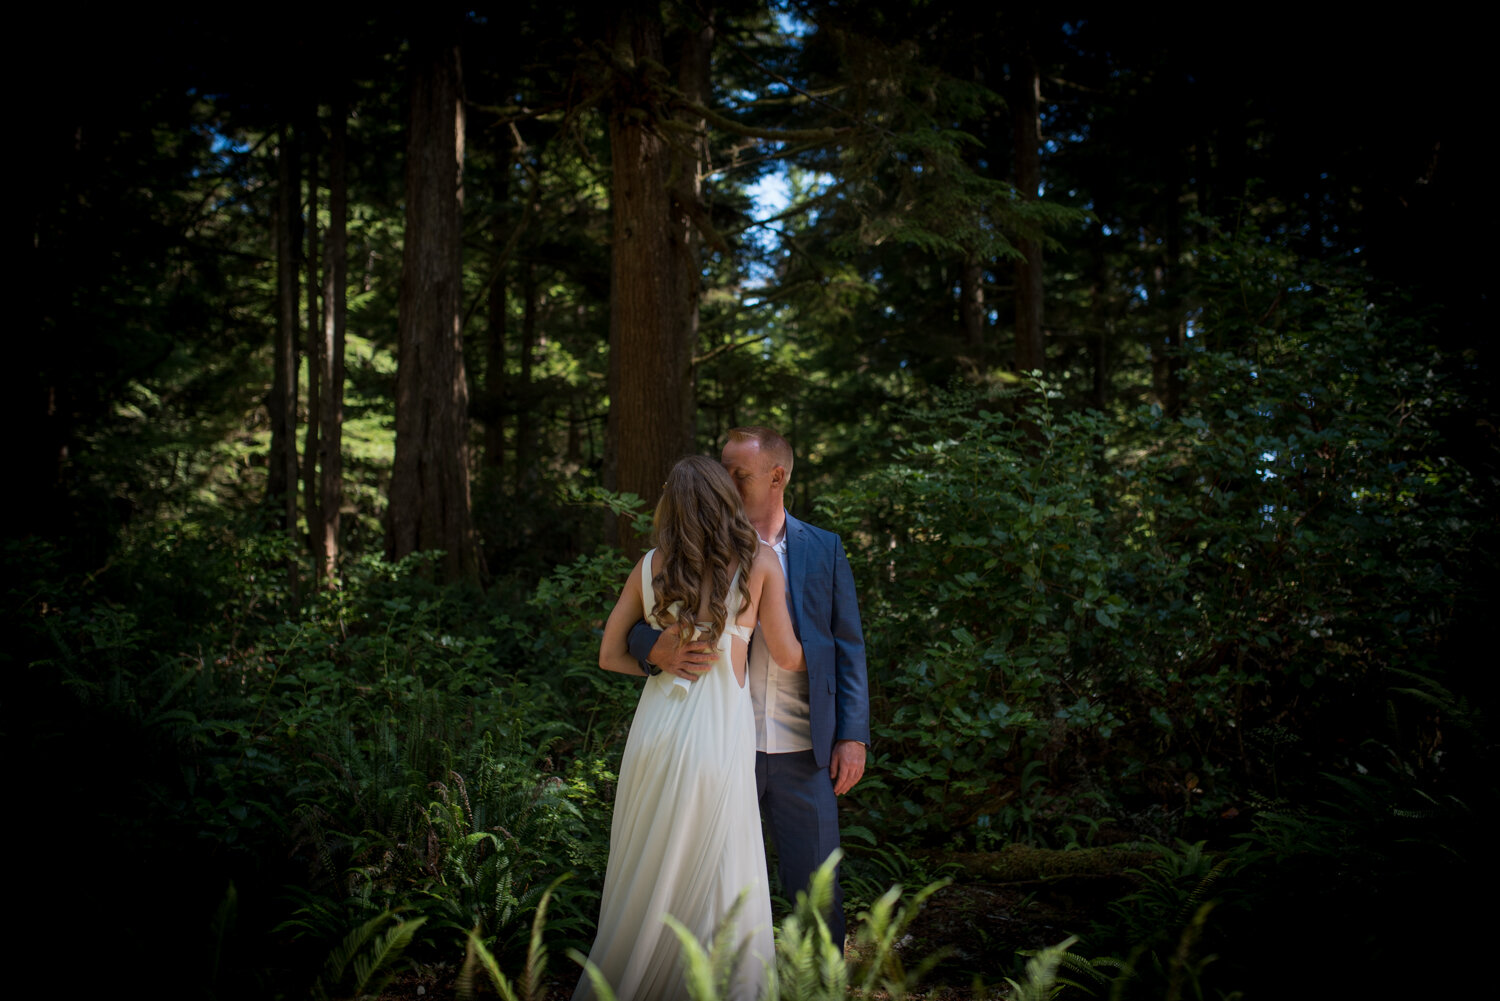 Ucluelet-Wya-Point-Wedding-Owen-Imaging-15.jpg